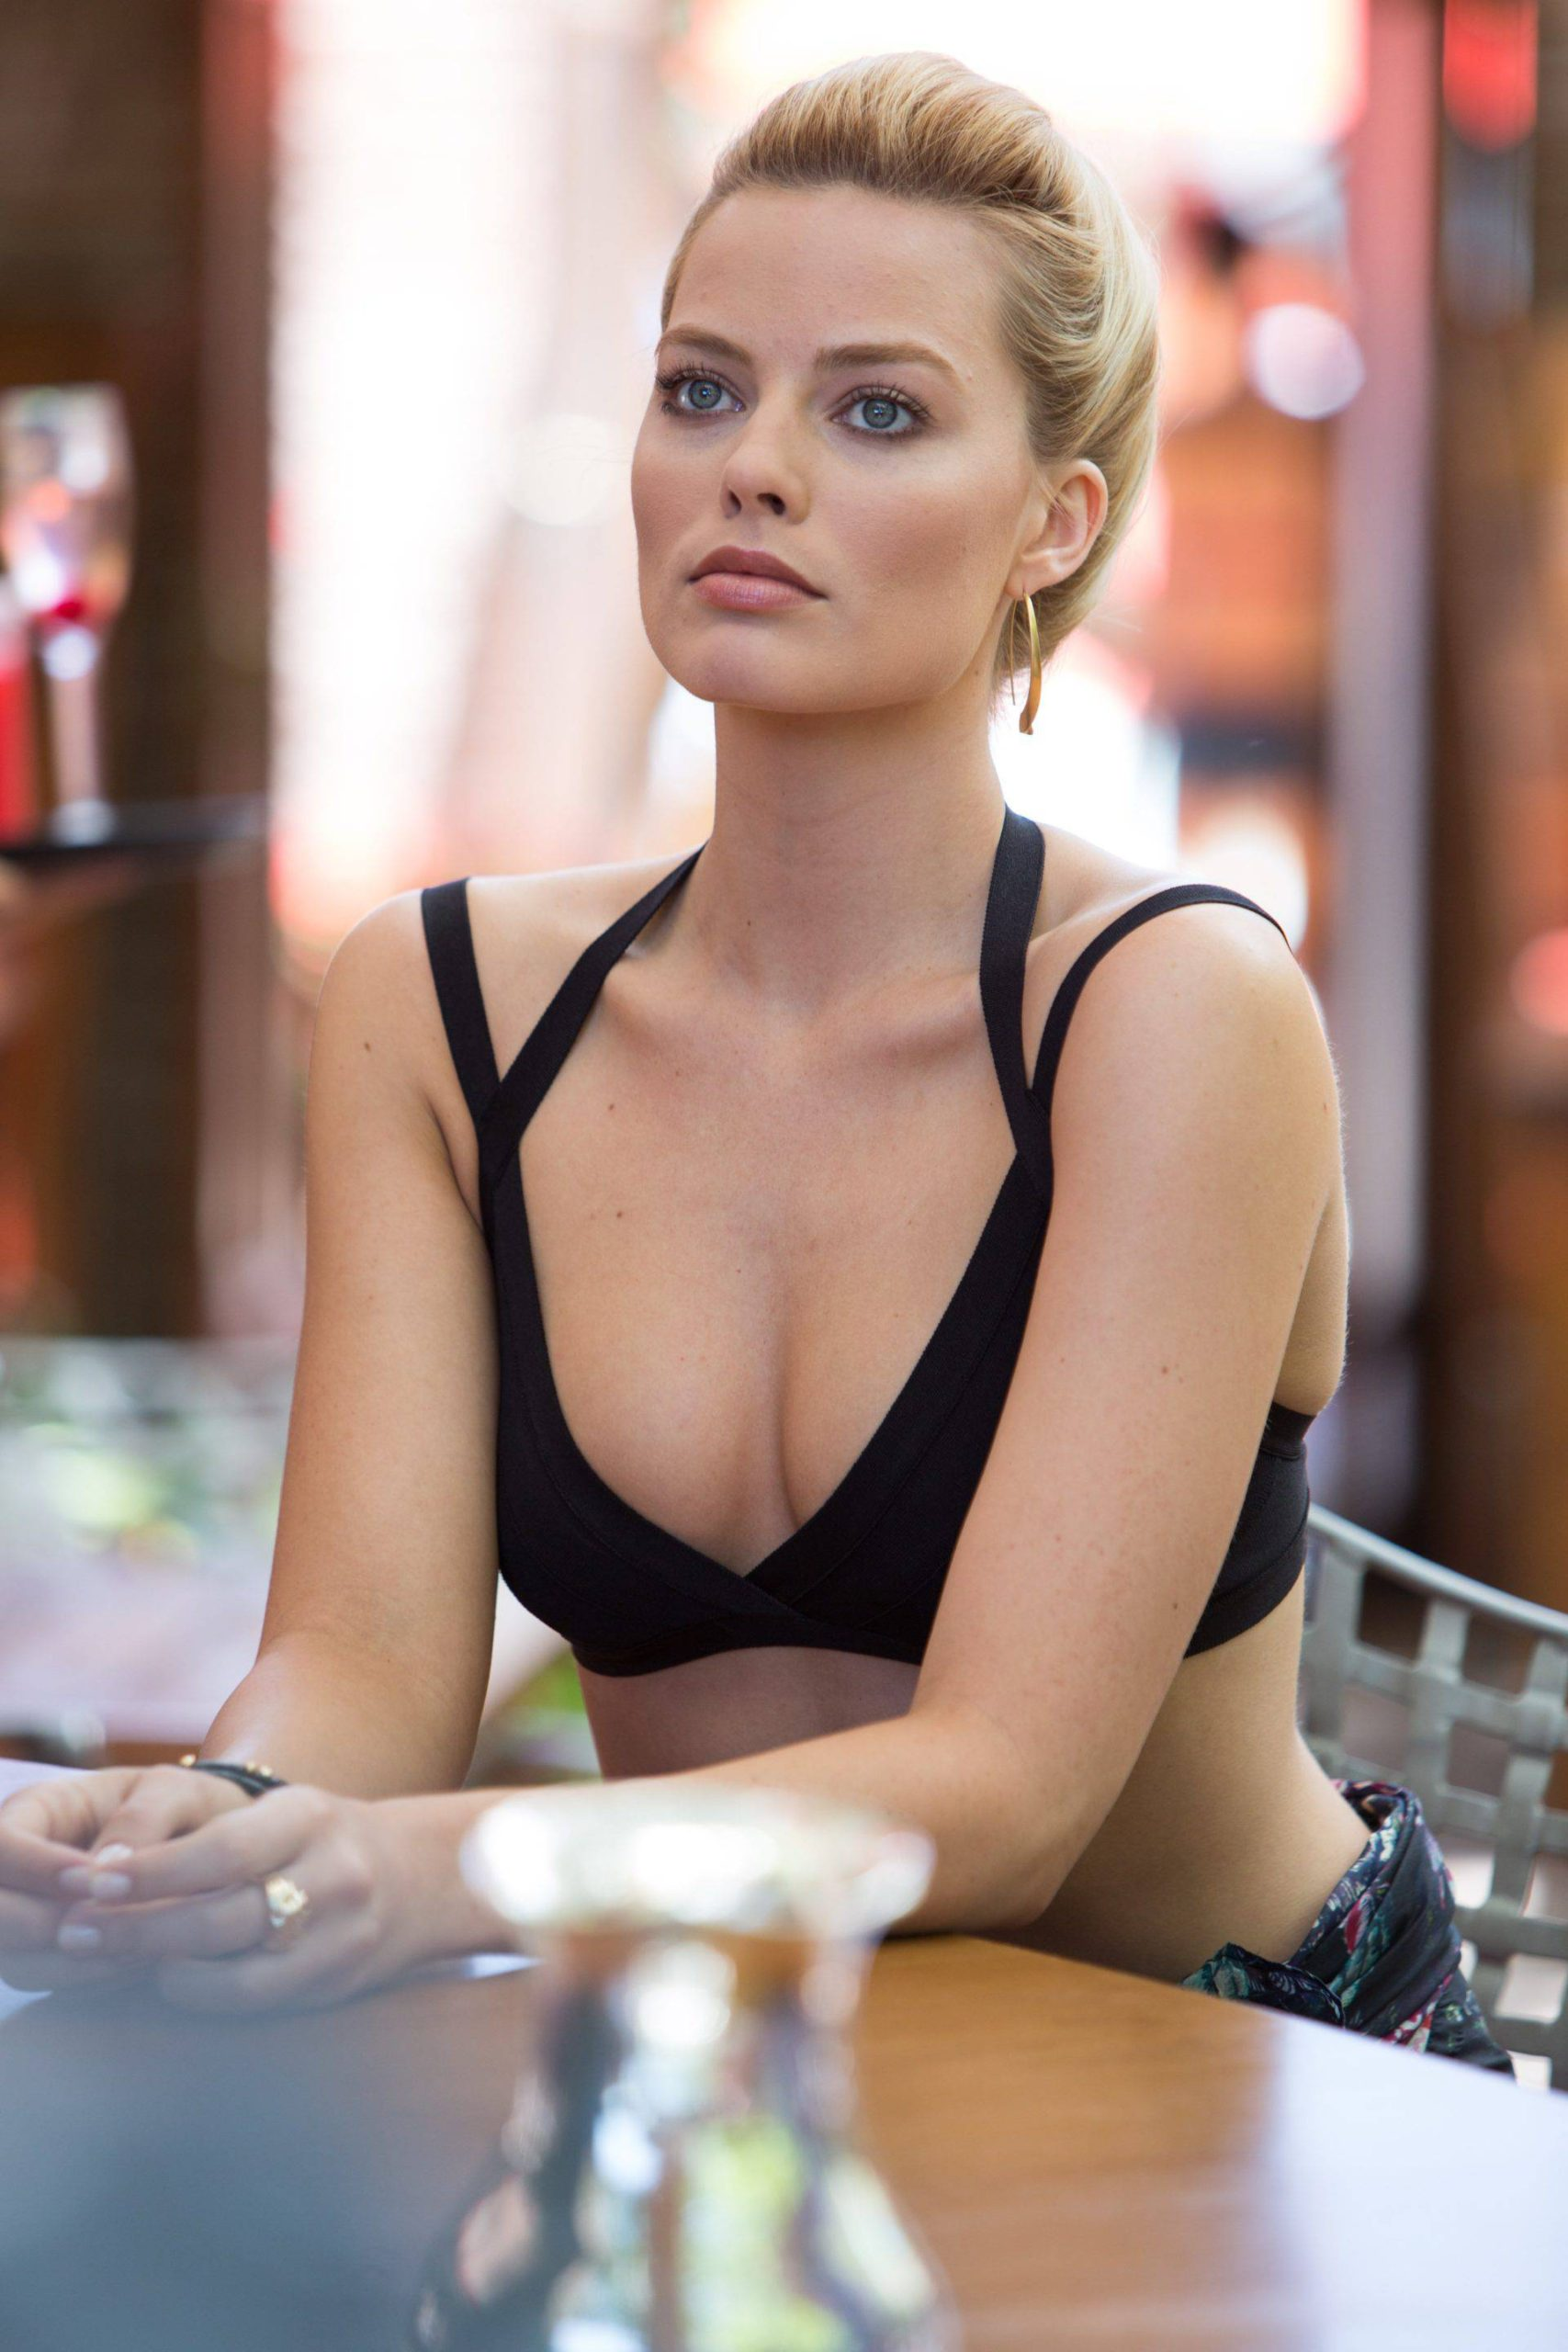 Margot Robbie Hot Bra Pics scaled - Margot Robbie Net Worth, Pics, Wallpapers, Career and Biography